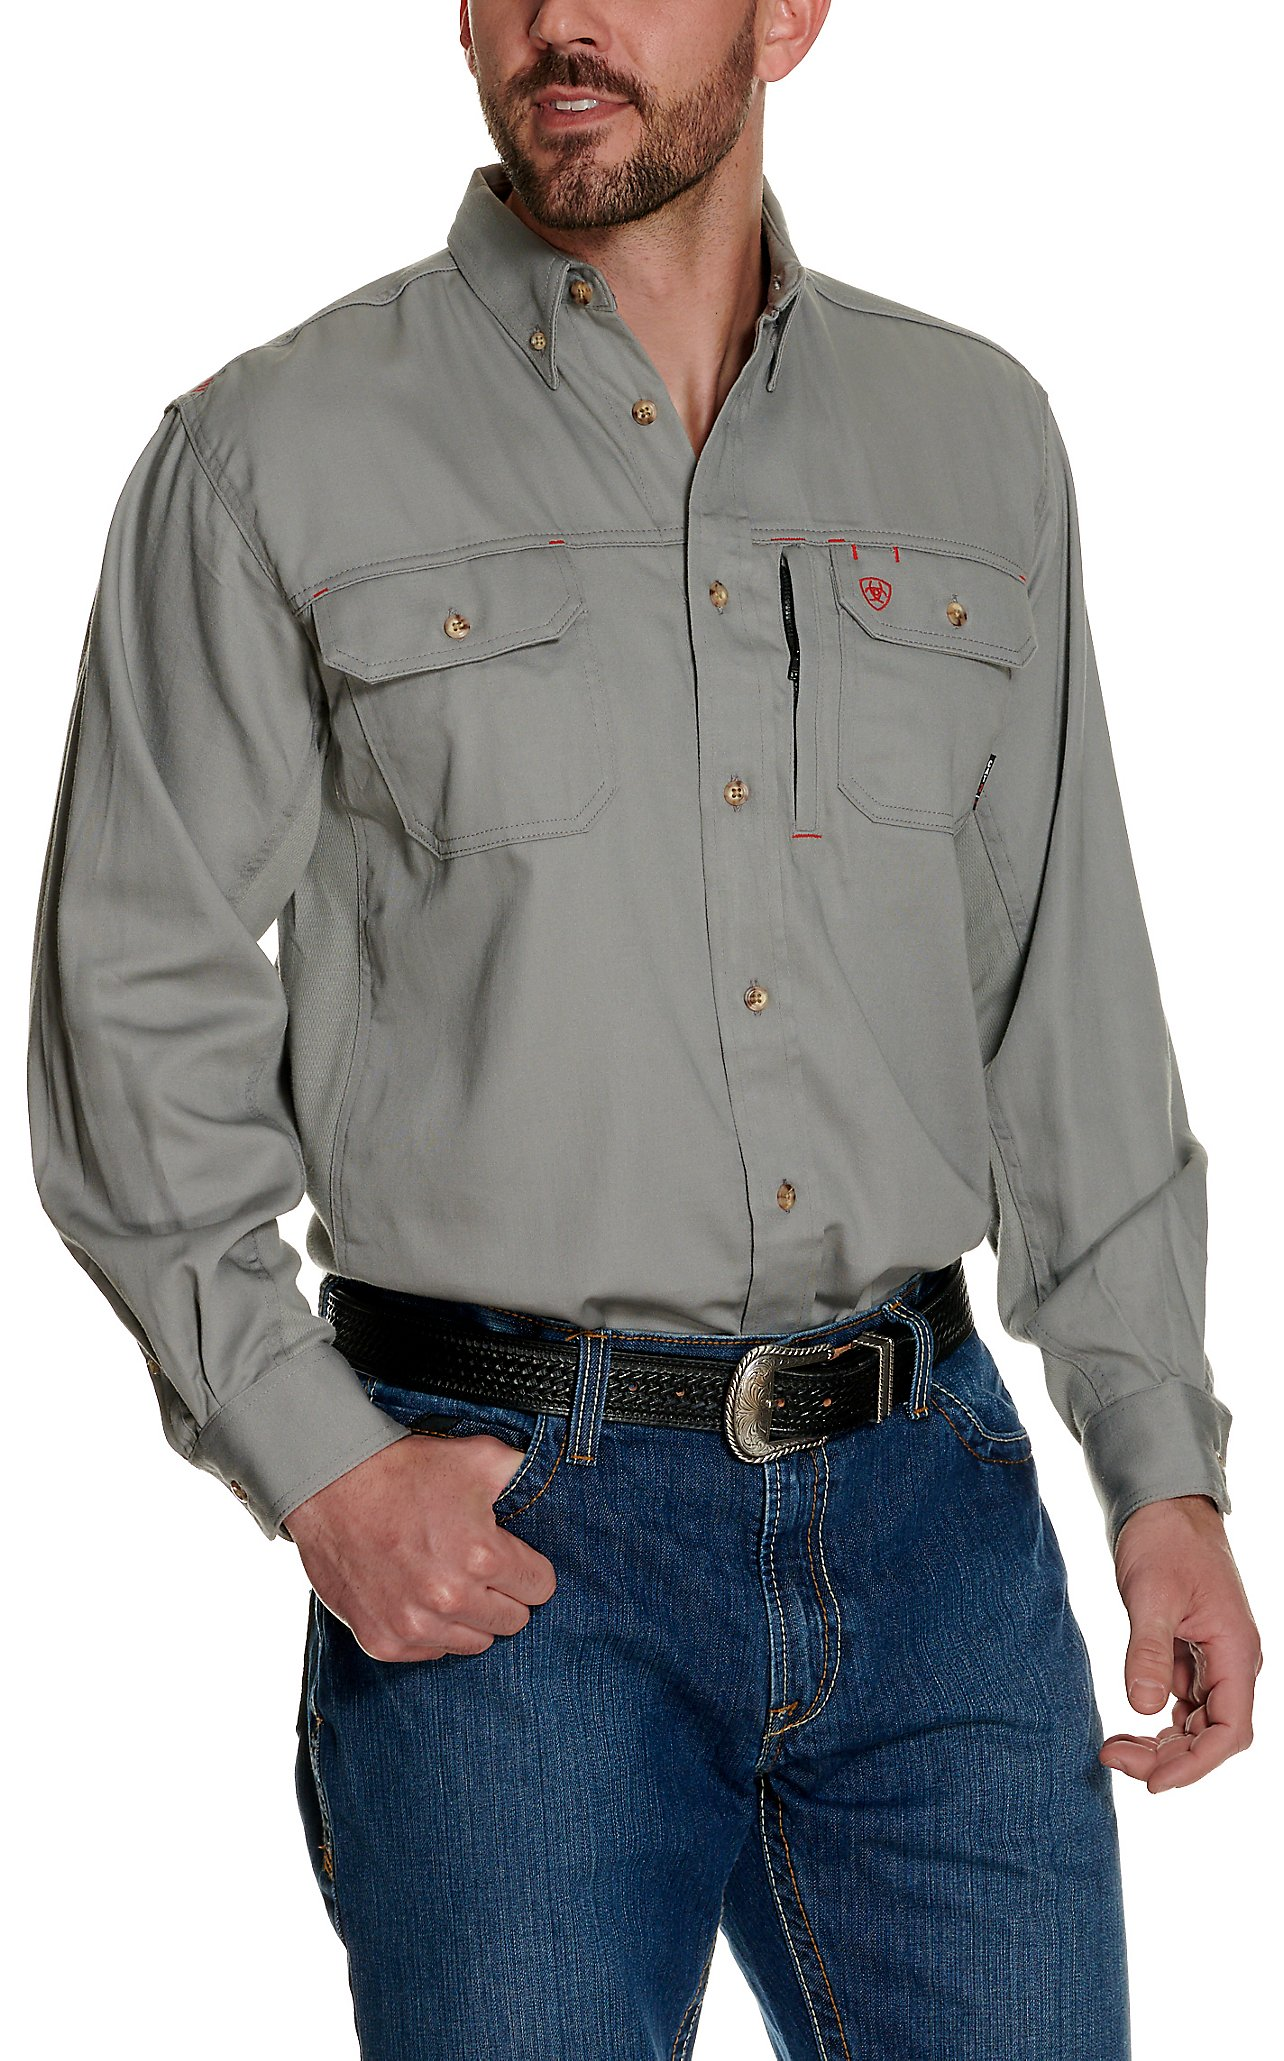 Cheap Ariat Fr Shirts | RLDM